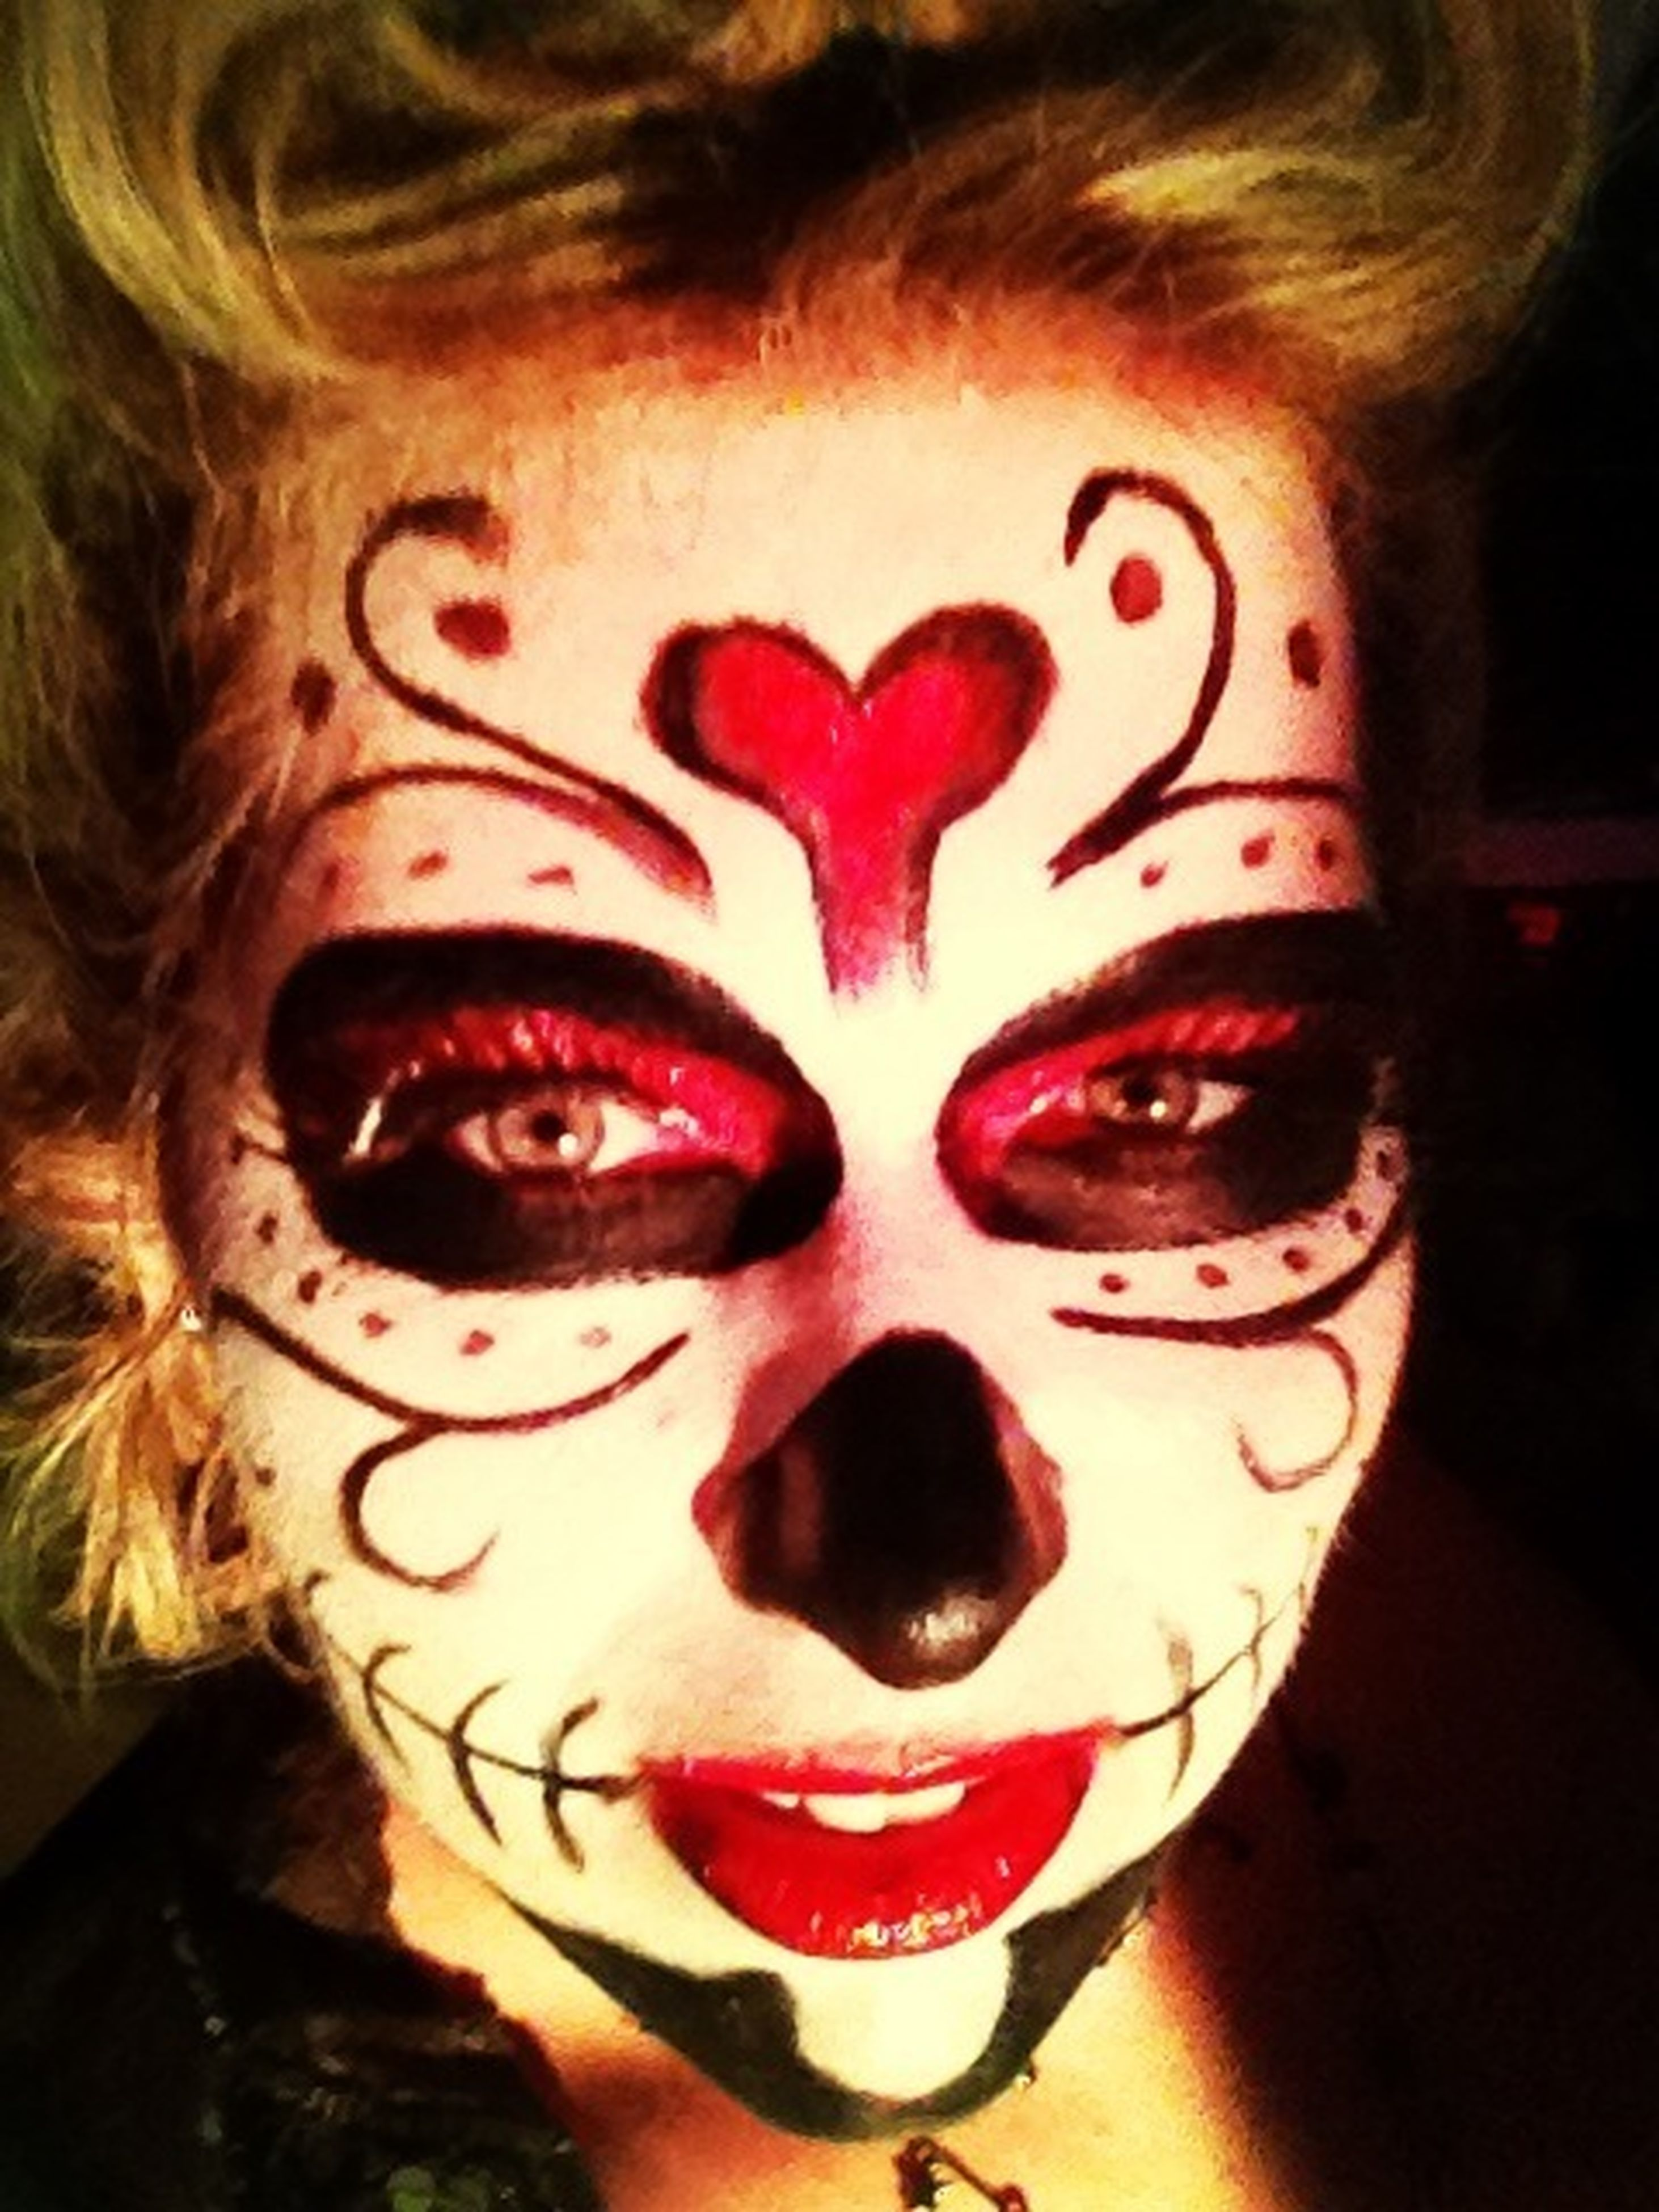 indoors, creativity, art, human representation, art and craft, close-up, celebration, portrait, anthropomorphic face, halloween, mask - disguise, looking at camera, heart shape, red, one person, still life, front view, tradition